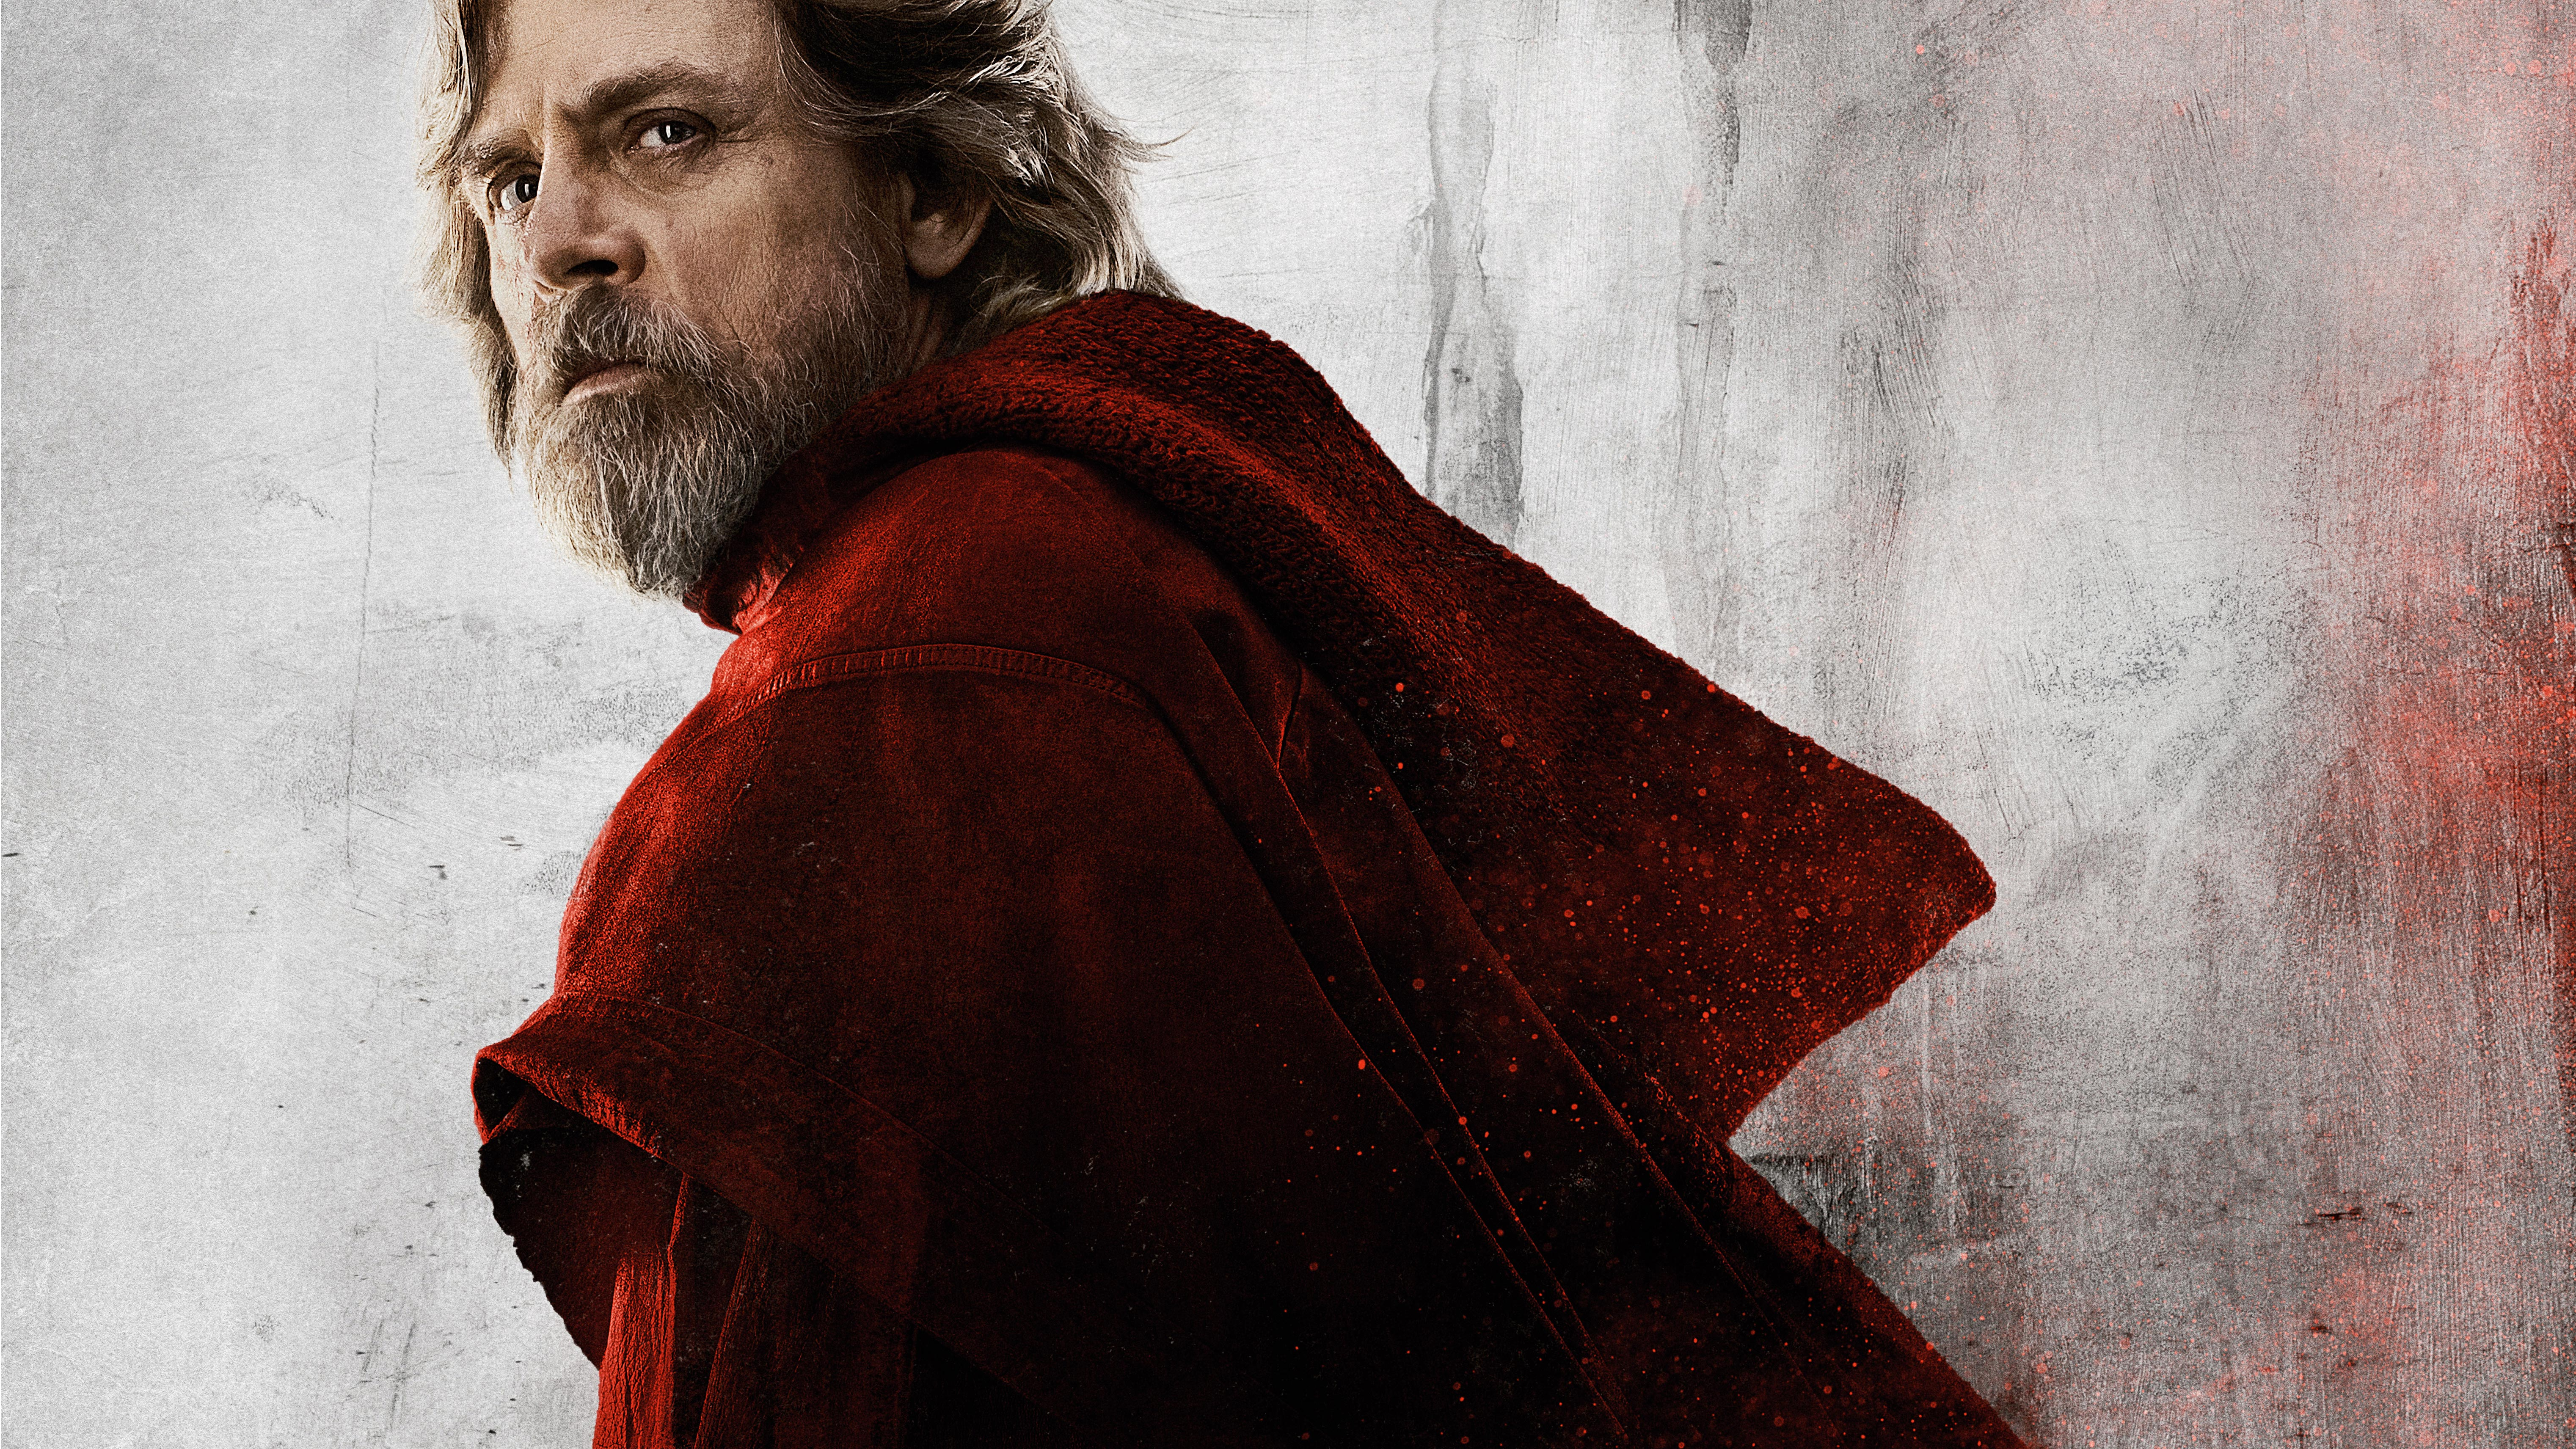 luke-skywalker-star-wars-the-last-jedi-dhjpg.jpeg